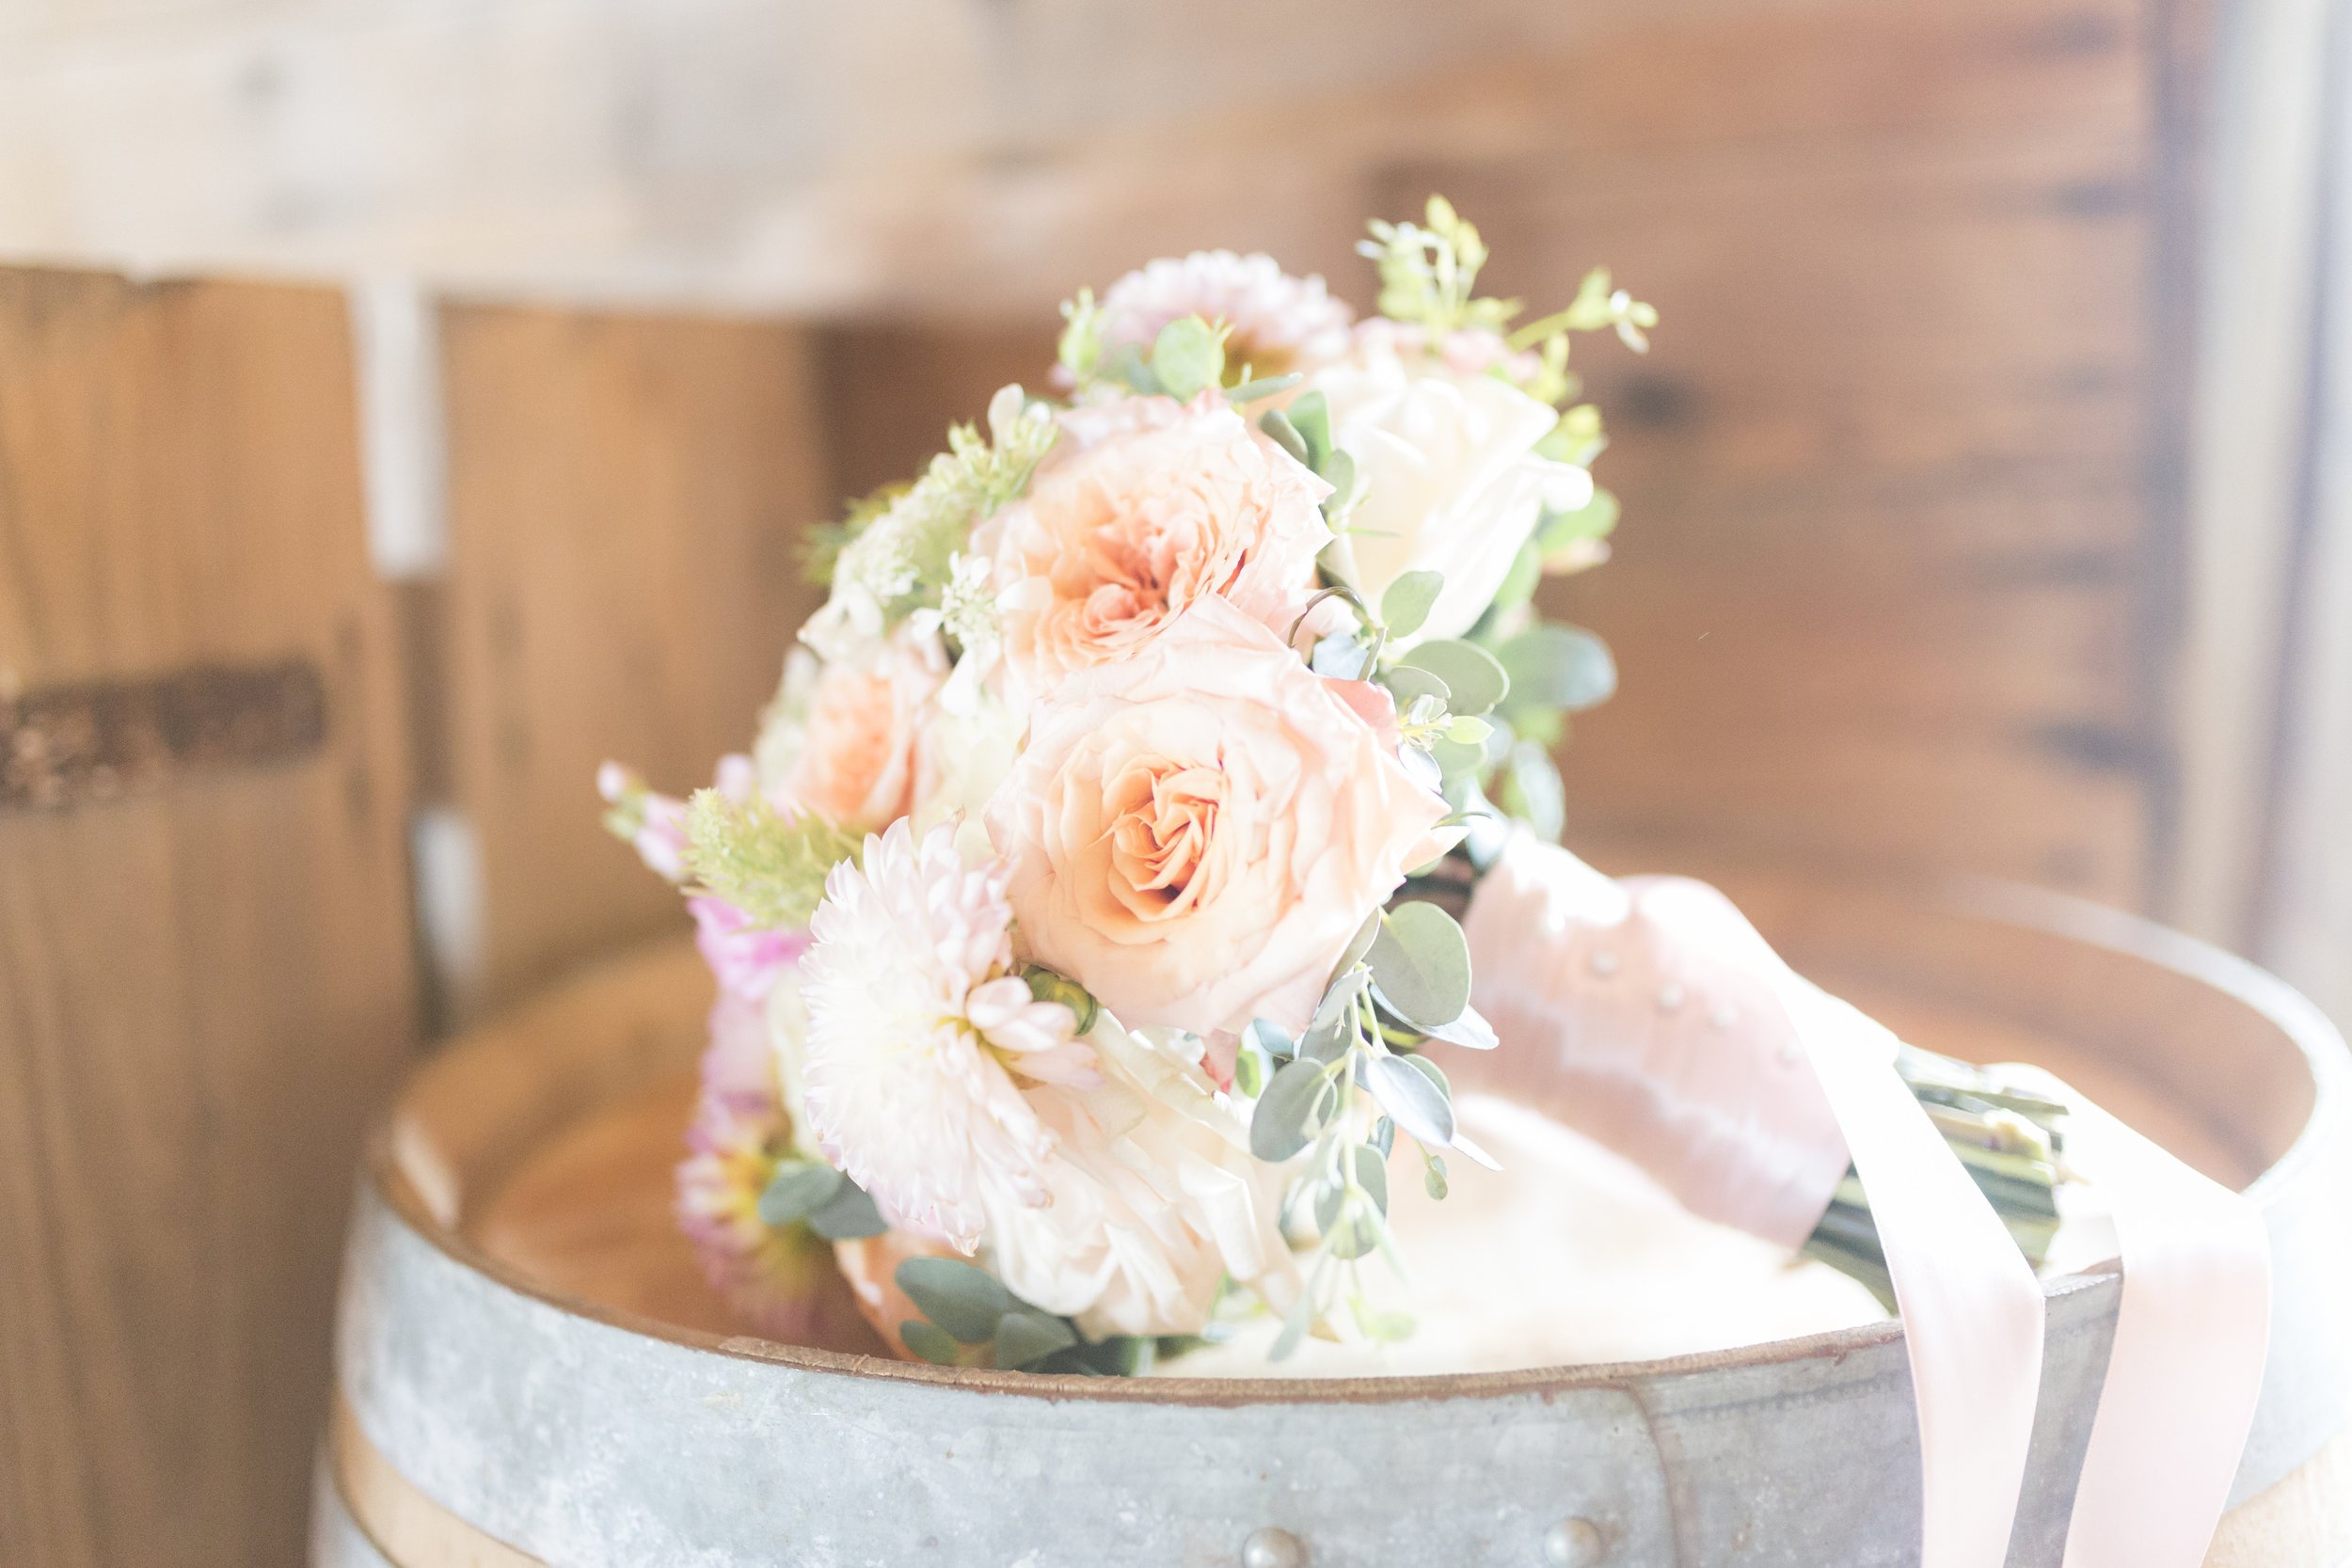 Summer rustic elegant Chicago wedding styled shoot captured by Sarah DeMaranville Photography. See more summer wedding ideas at CHItheeWED.com!